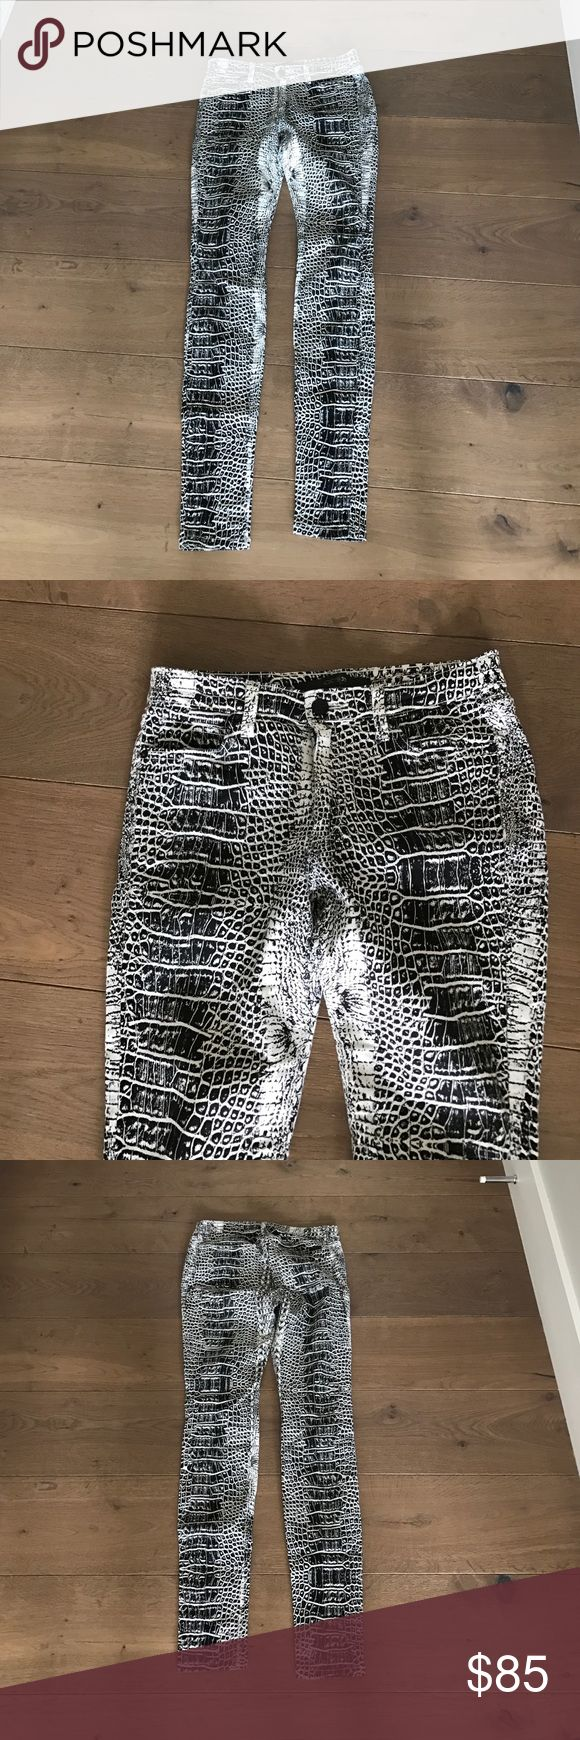 Joes jeans snake print Never worn joes jeans snake print pant Joe's Jeans Jeans Skinny